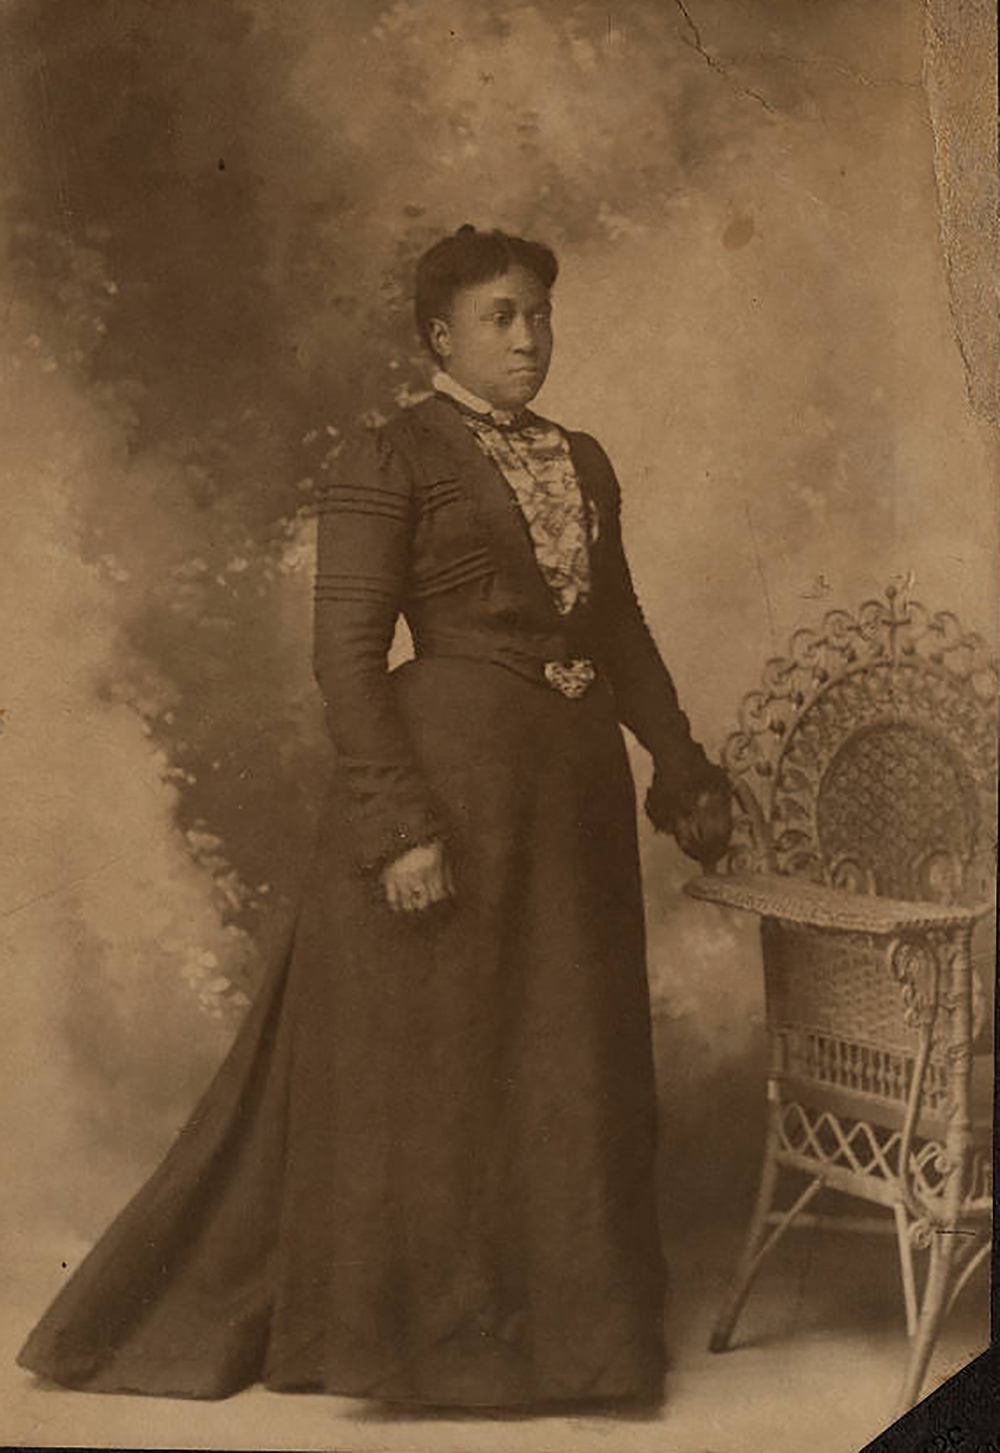 Dr. Wiley's hair is parted and pulled back. Standing in a high-collared, long dress, she appears solemn and confident. Her left hand rests on an ornate wicker chair. Caroline Still [Wiley] Anderson, c. 1880. Photograph by J.A. Hurst. William Still Collection.